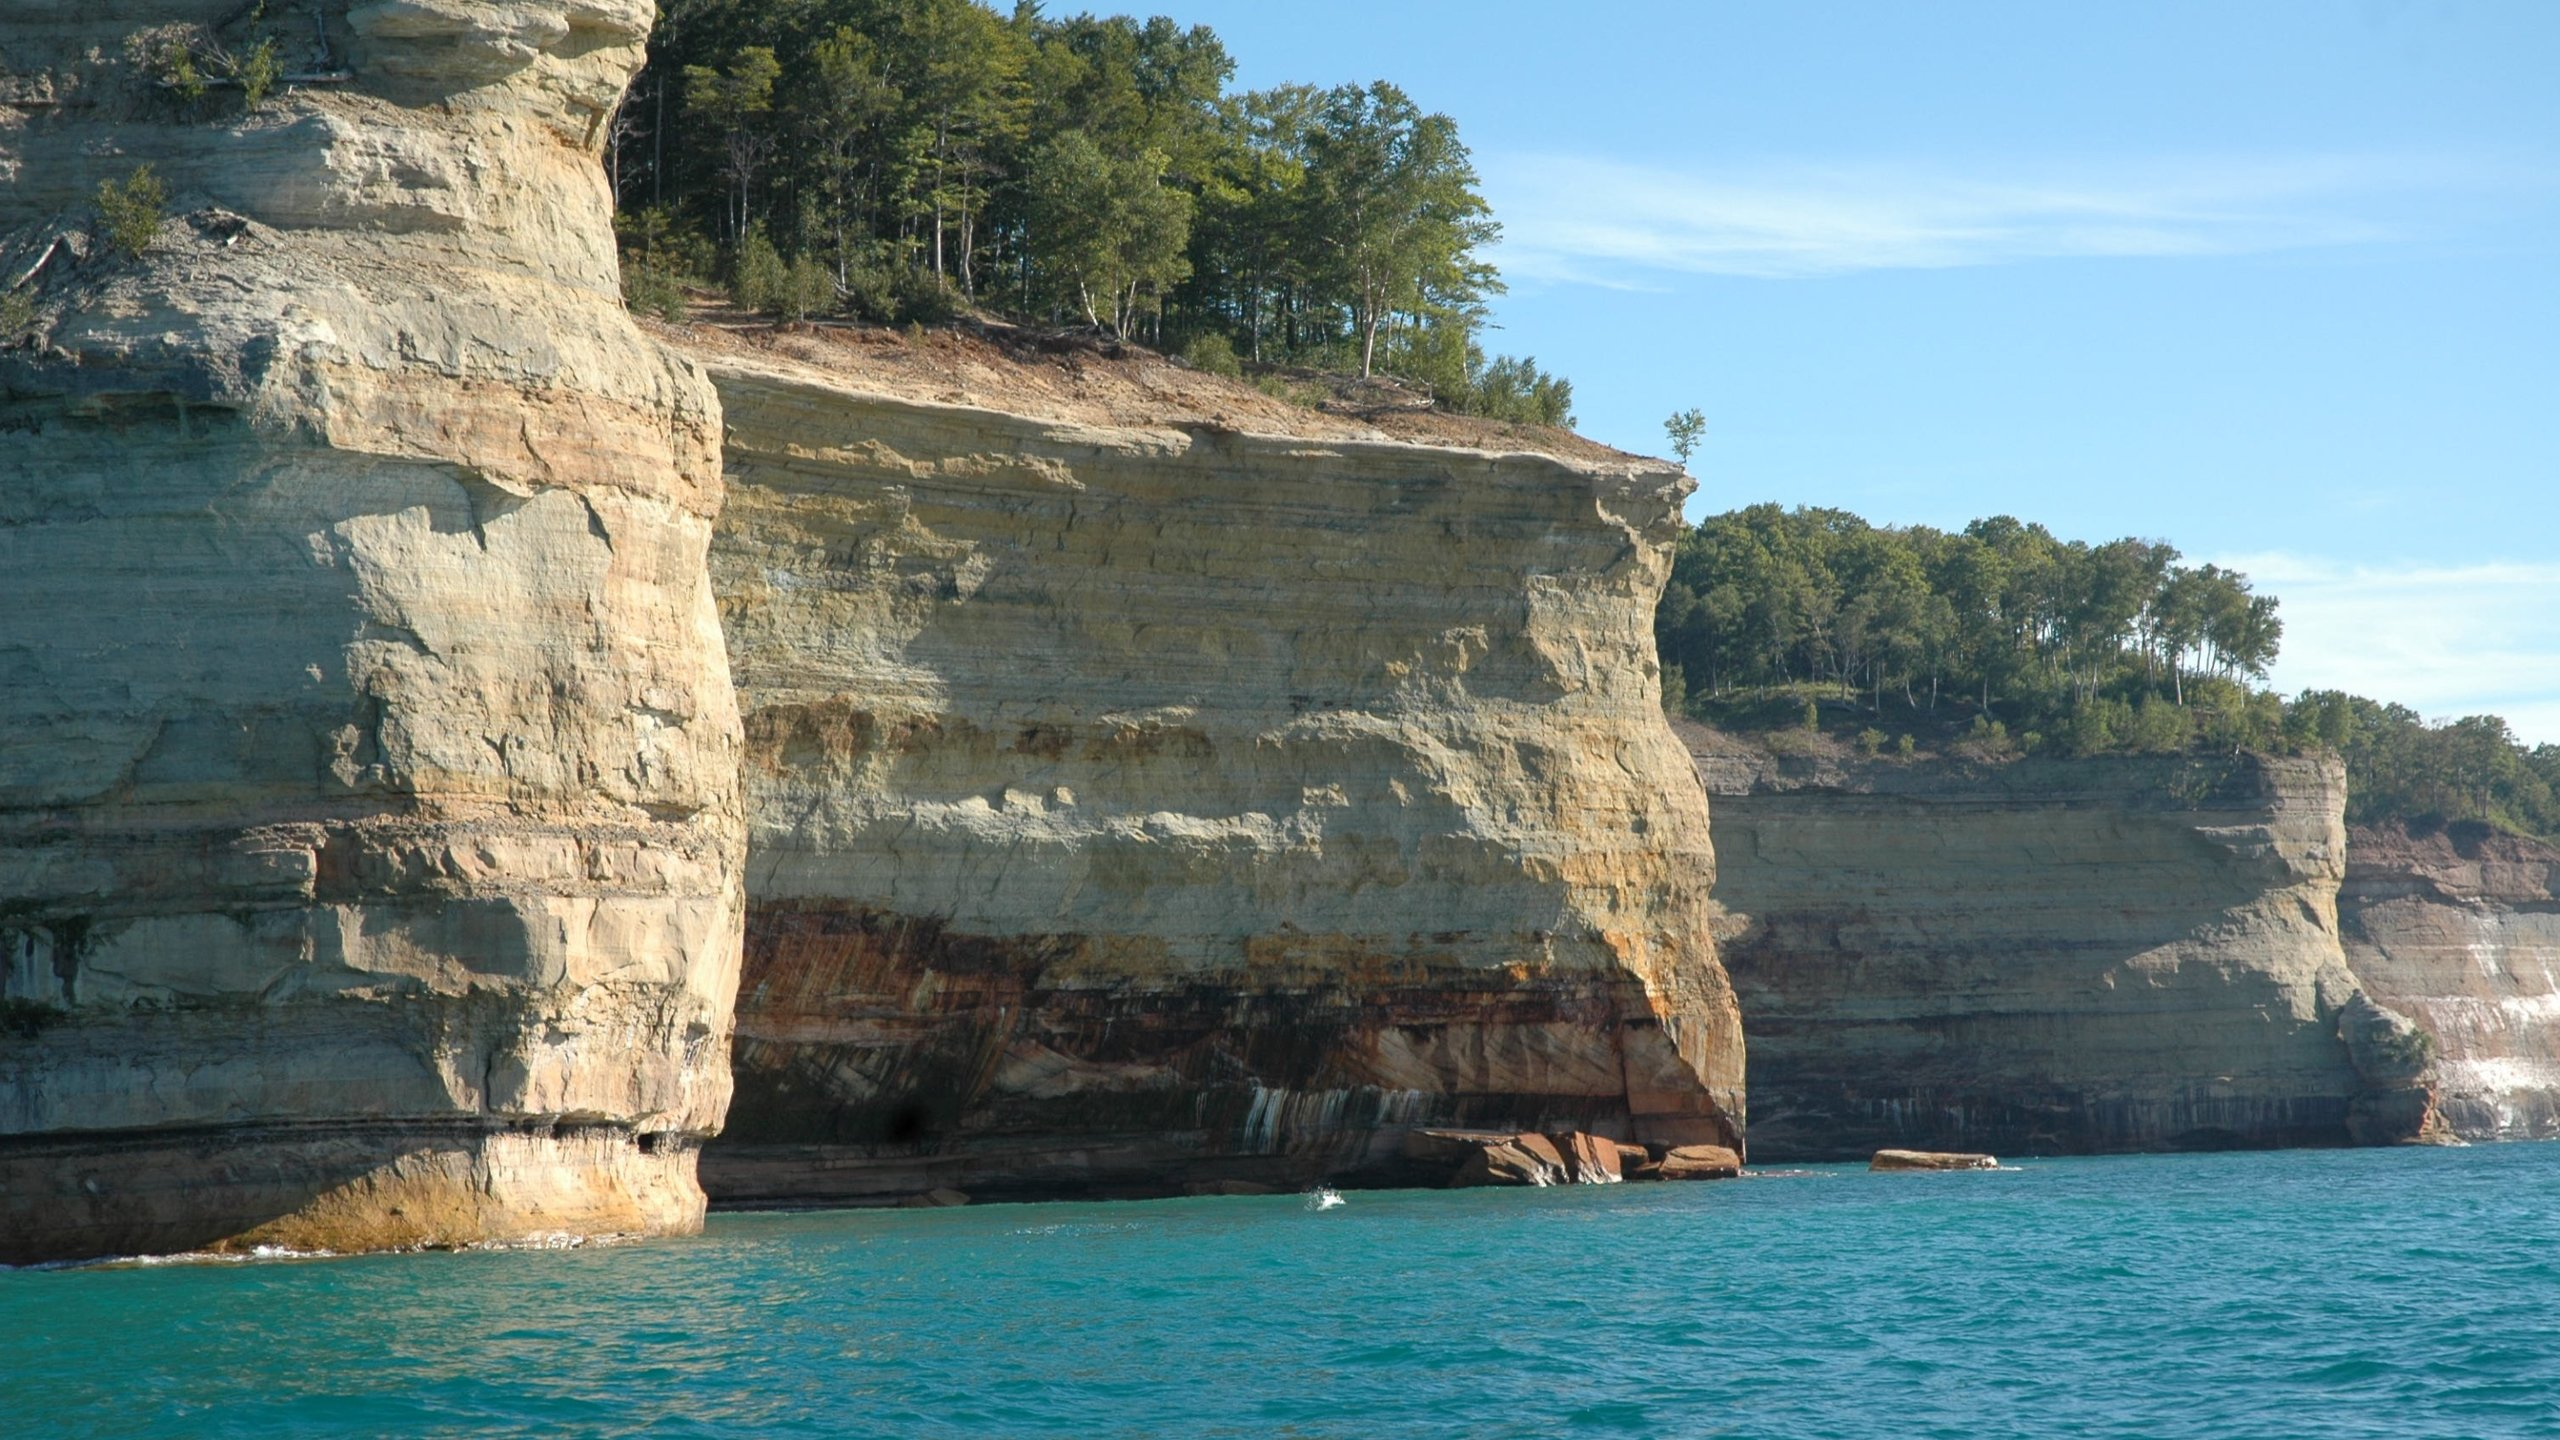 Pictured Rocks National Lakeshore, Michigan, United States of America